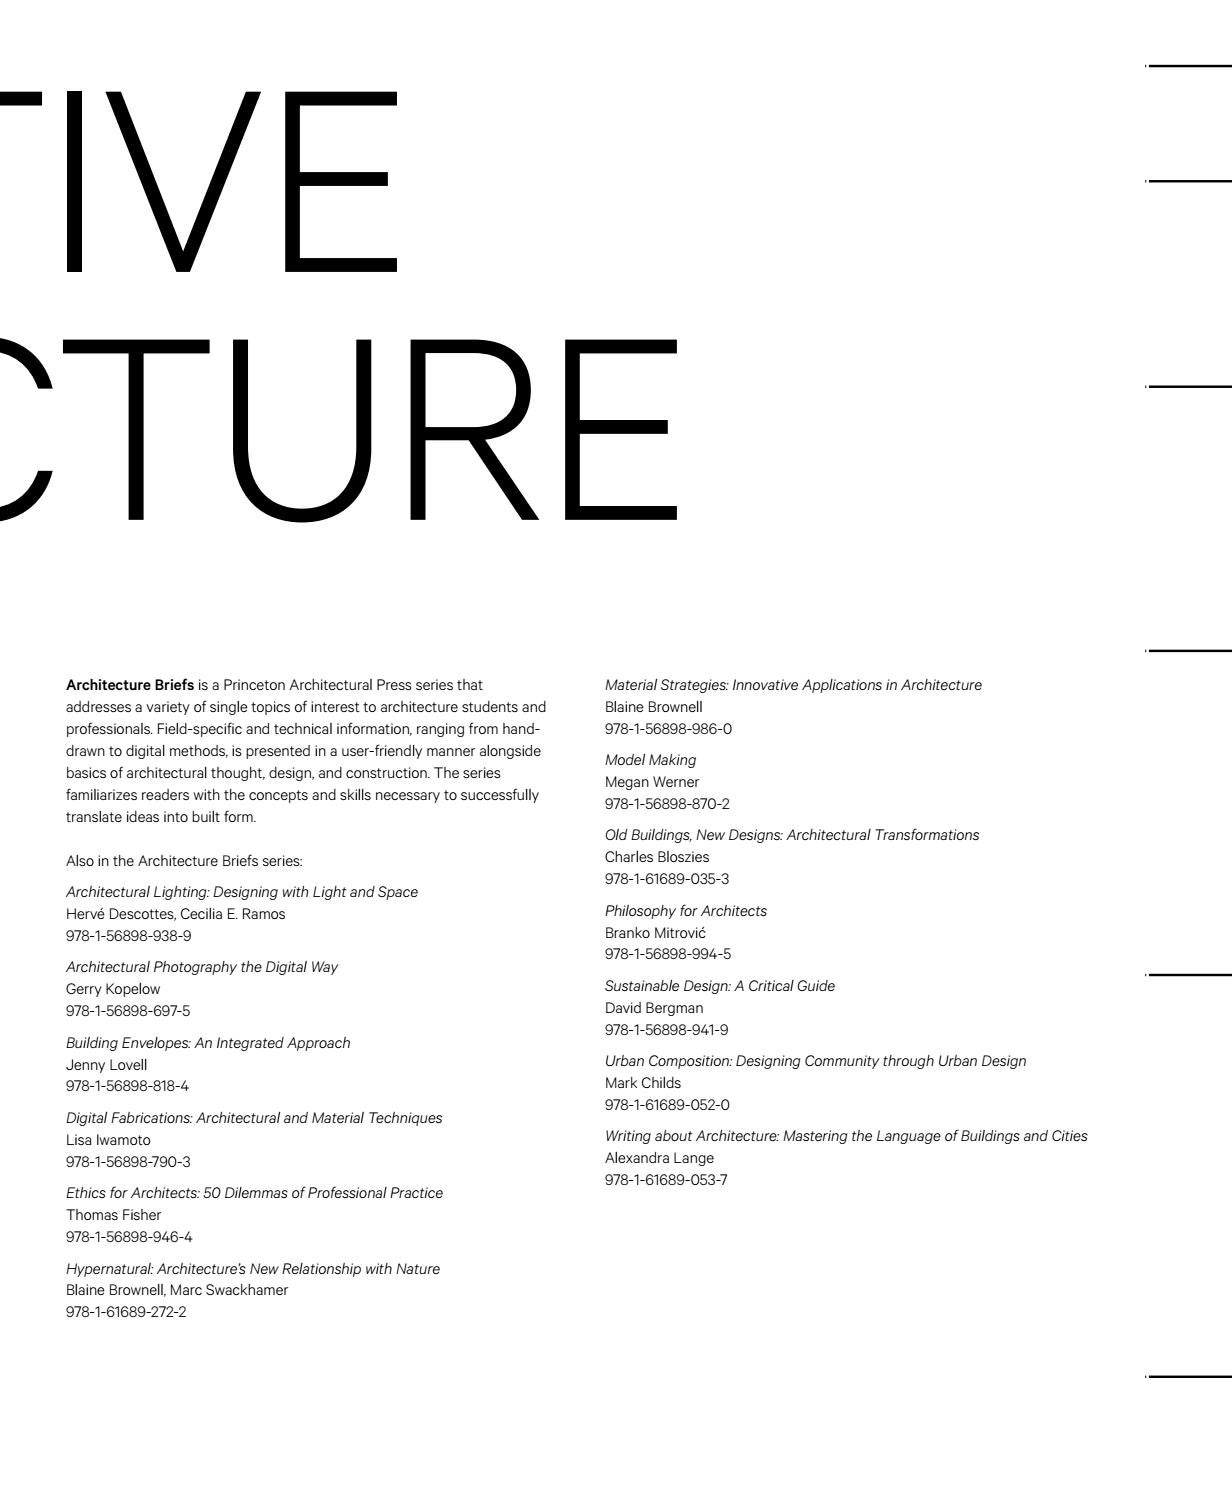 Interactive Architecture by Princeton Architectural Press